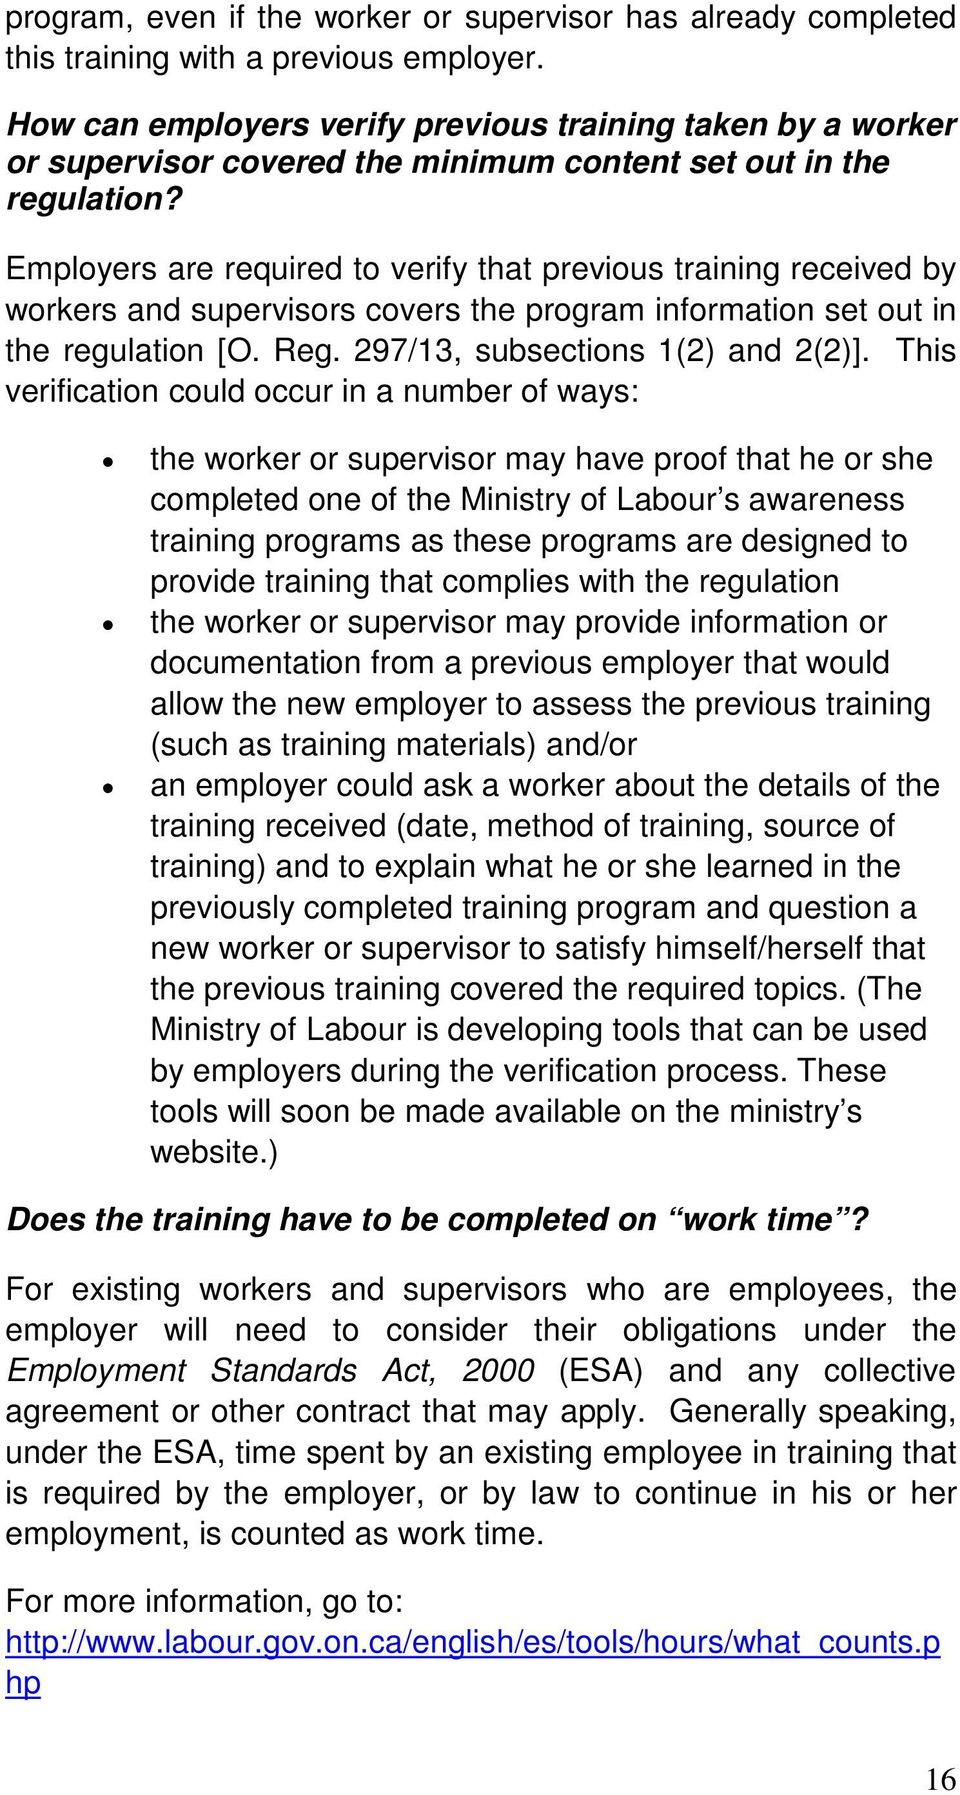 Employers are required to verify that previous training received by workers and supervisors covers the program information set out in the regulation [O. Reg. 297/13, subsections 1(2) and 2(2)].